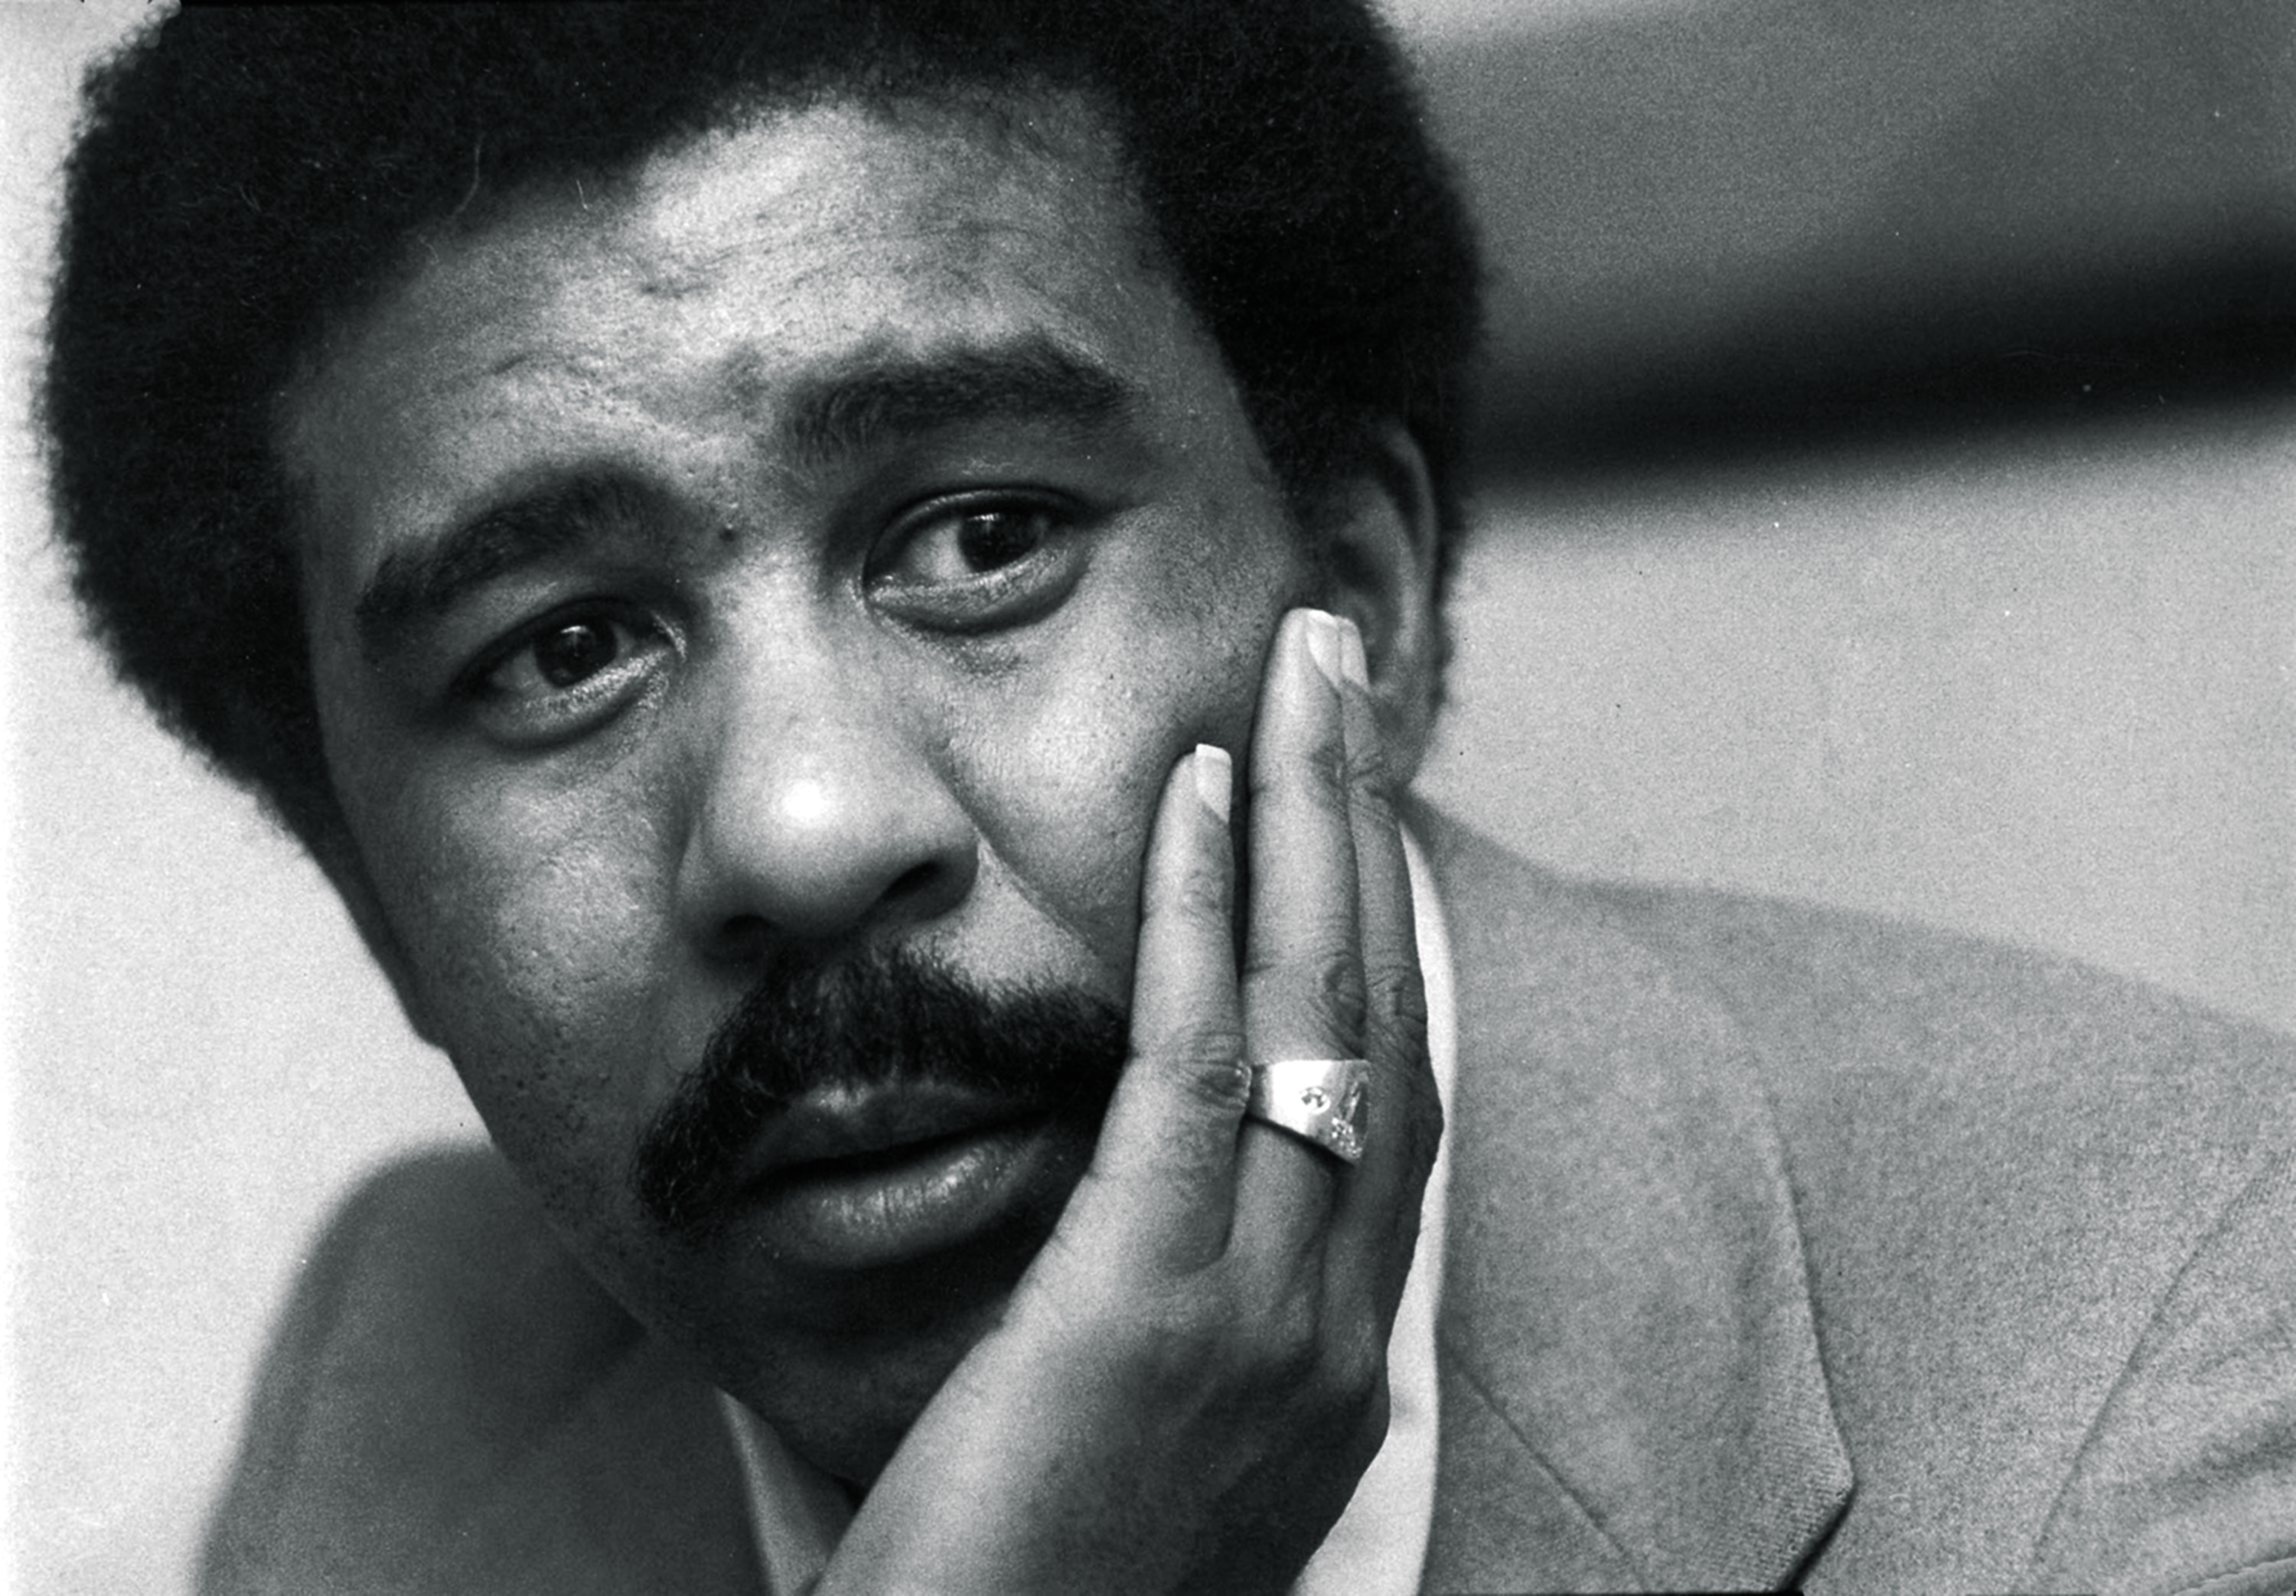 The Pryor paradox: Onstage he was incisive and vulnerable; offstage he tormented anyone who got too close.